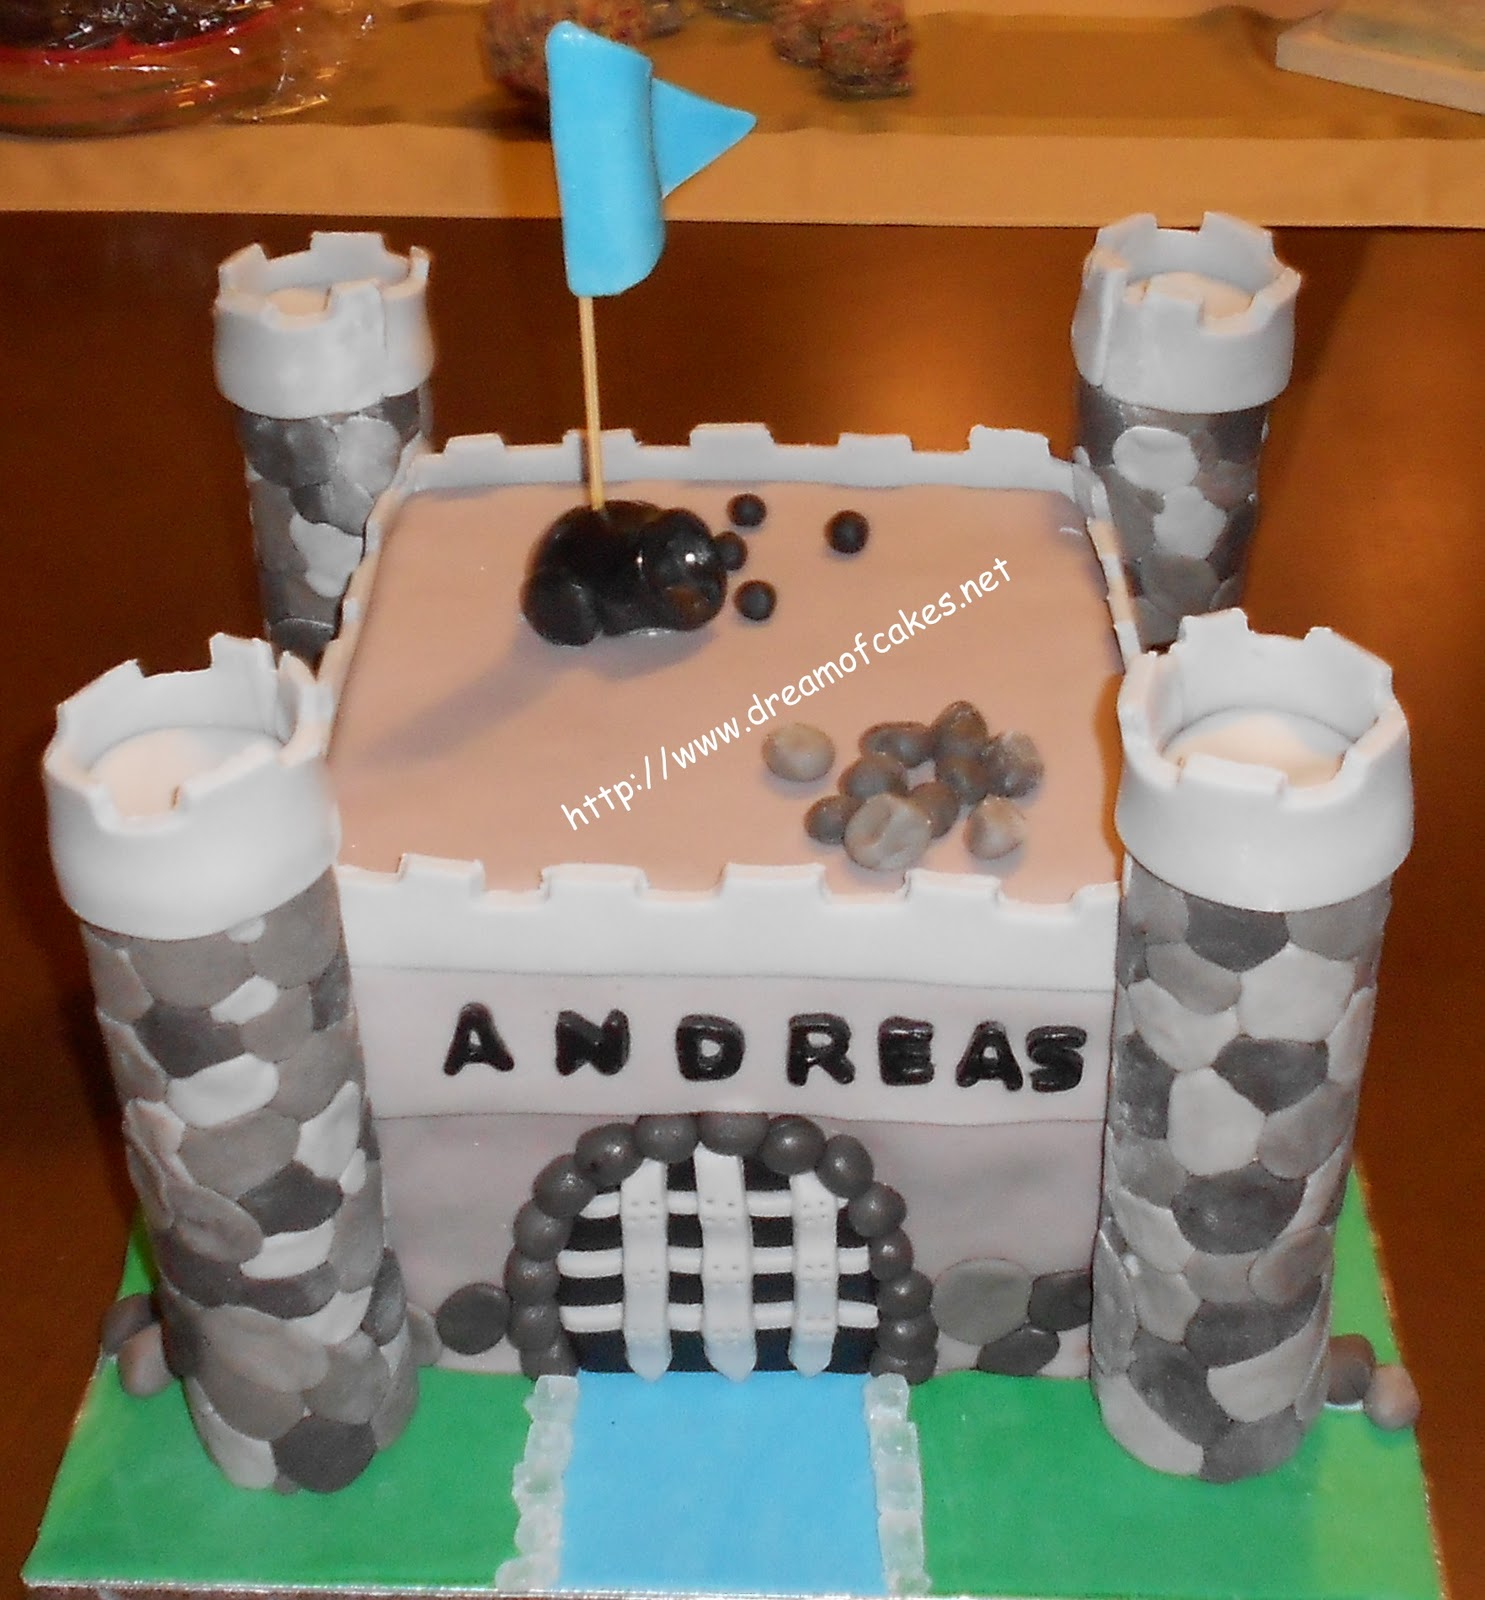 Birthday Cake For 15 Year Old Boy Image Inspiration of Cake and